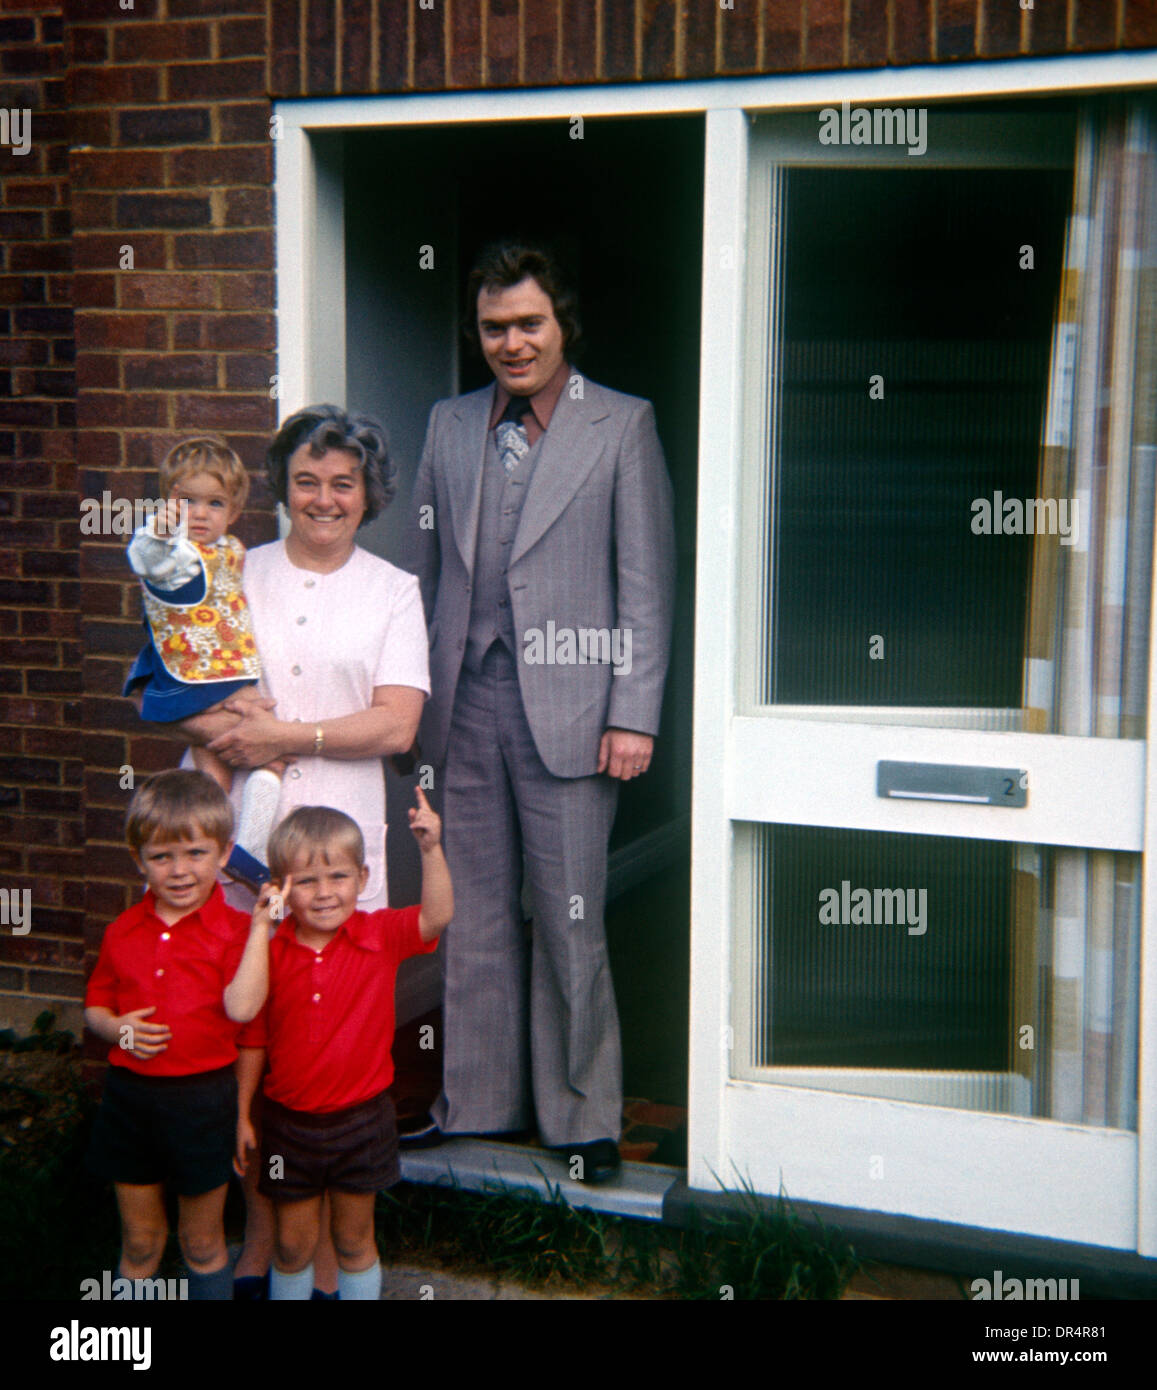 A portrait of family standing in the doorway of a detached home in the 1970s. - Stock Image